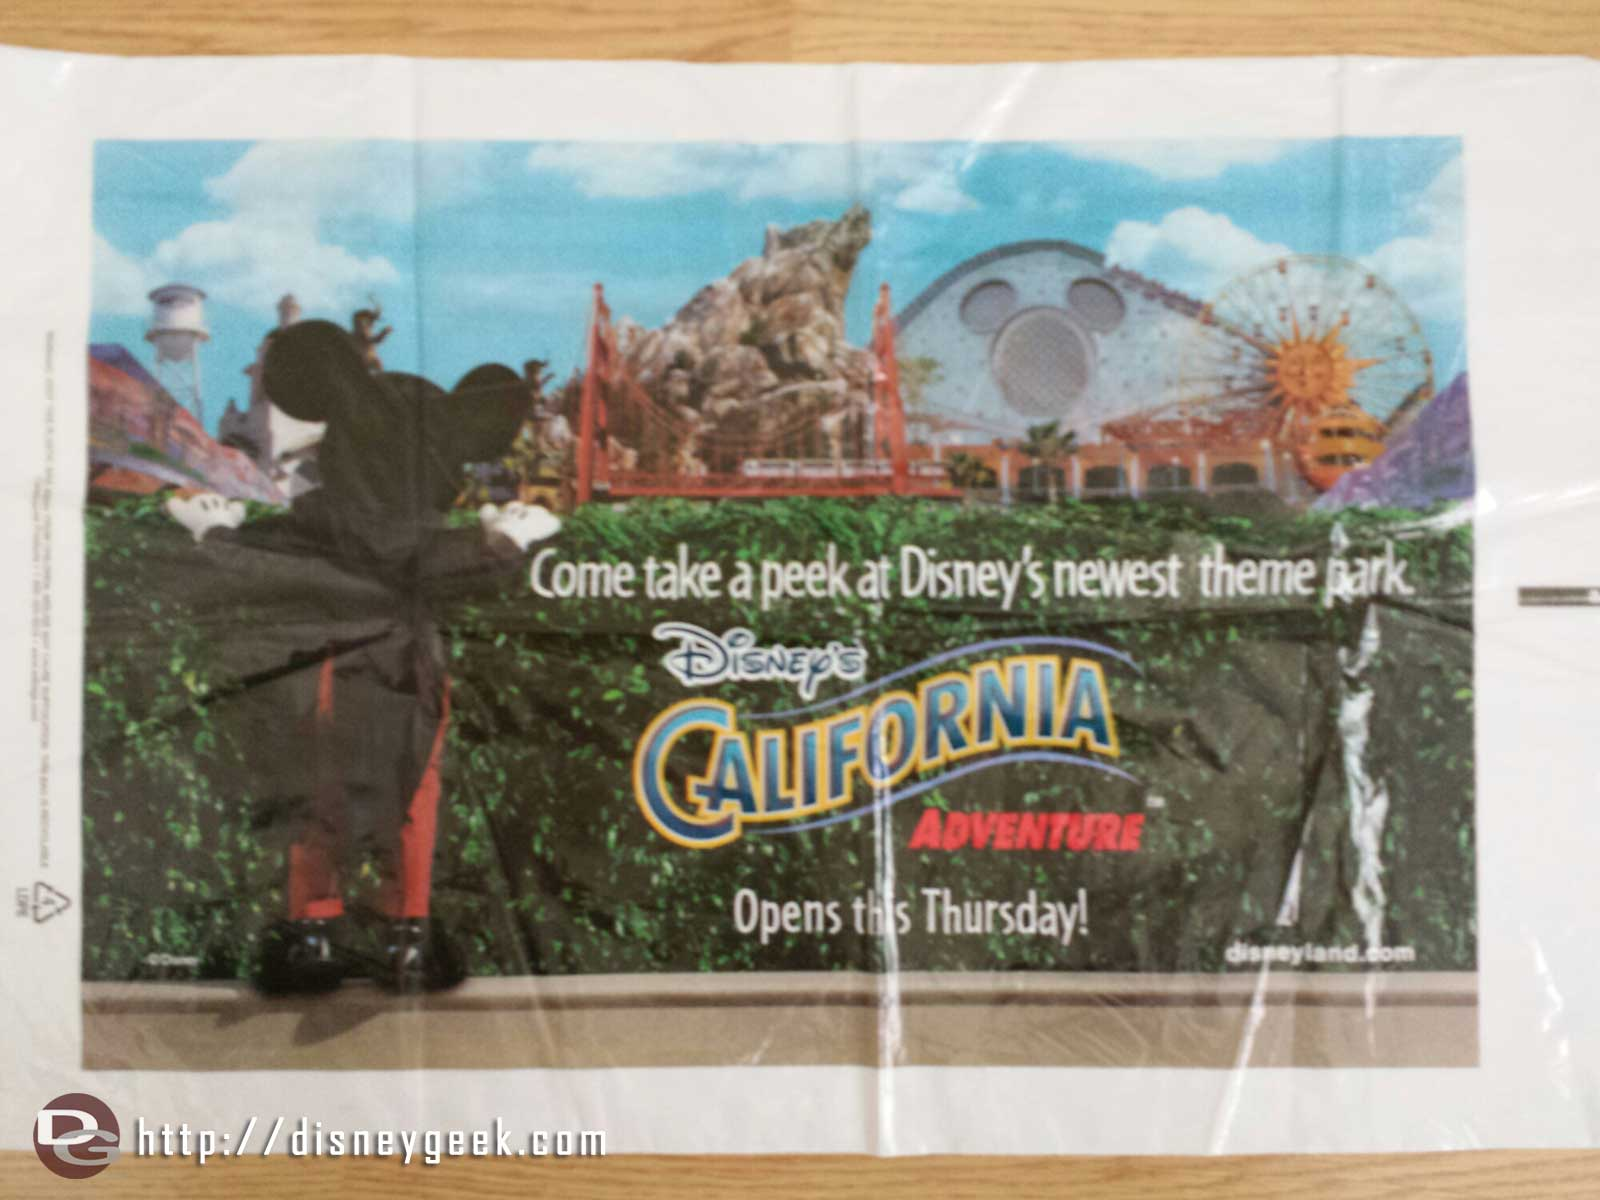 Going through some items and came across this DCA opens this Thursday bag.  Don't remember what its from.